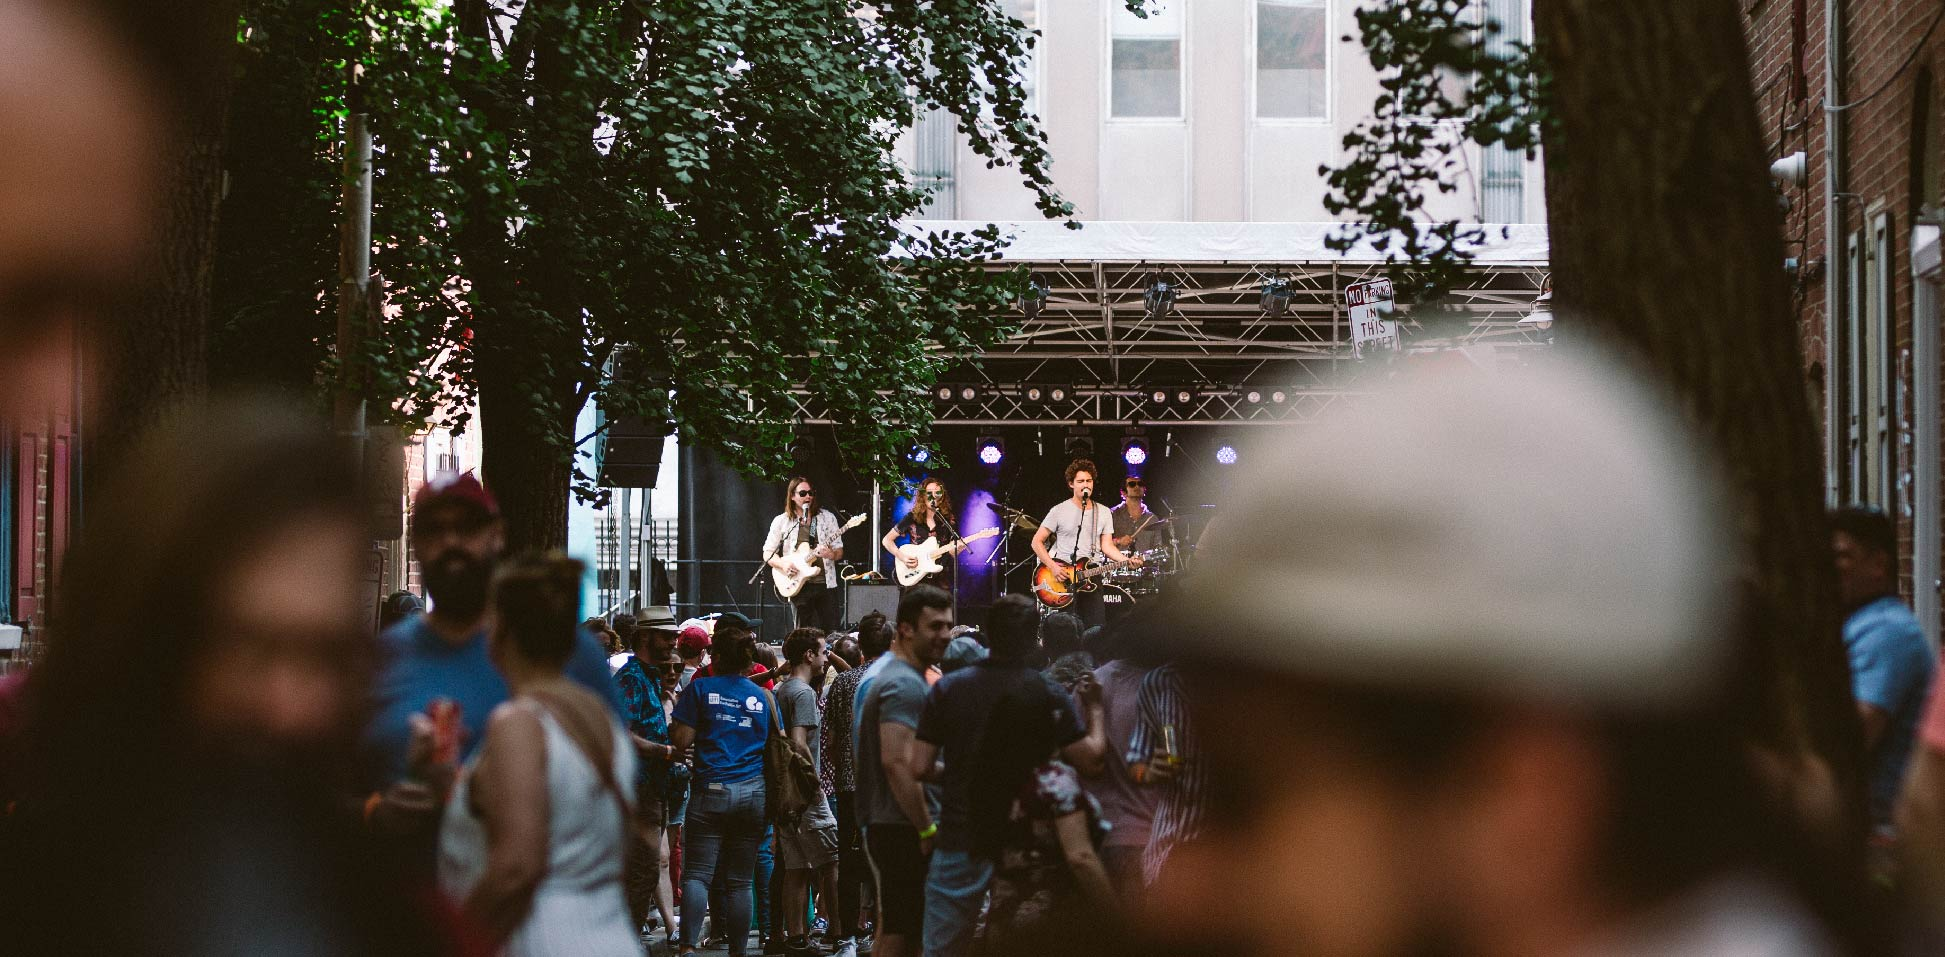 Phillys Top 5 Outdoor Venues for Live Music5